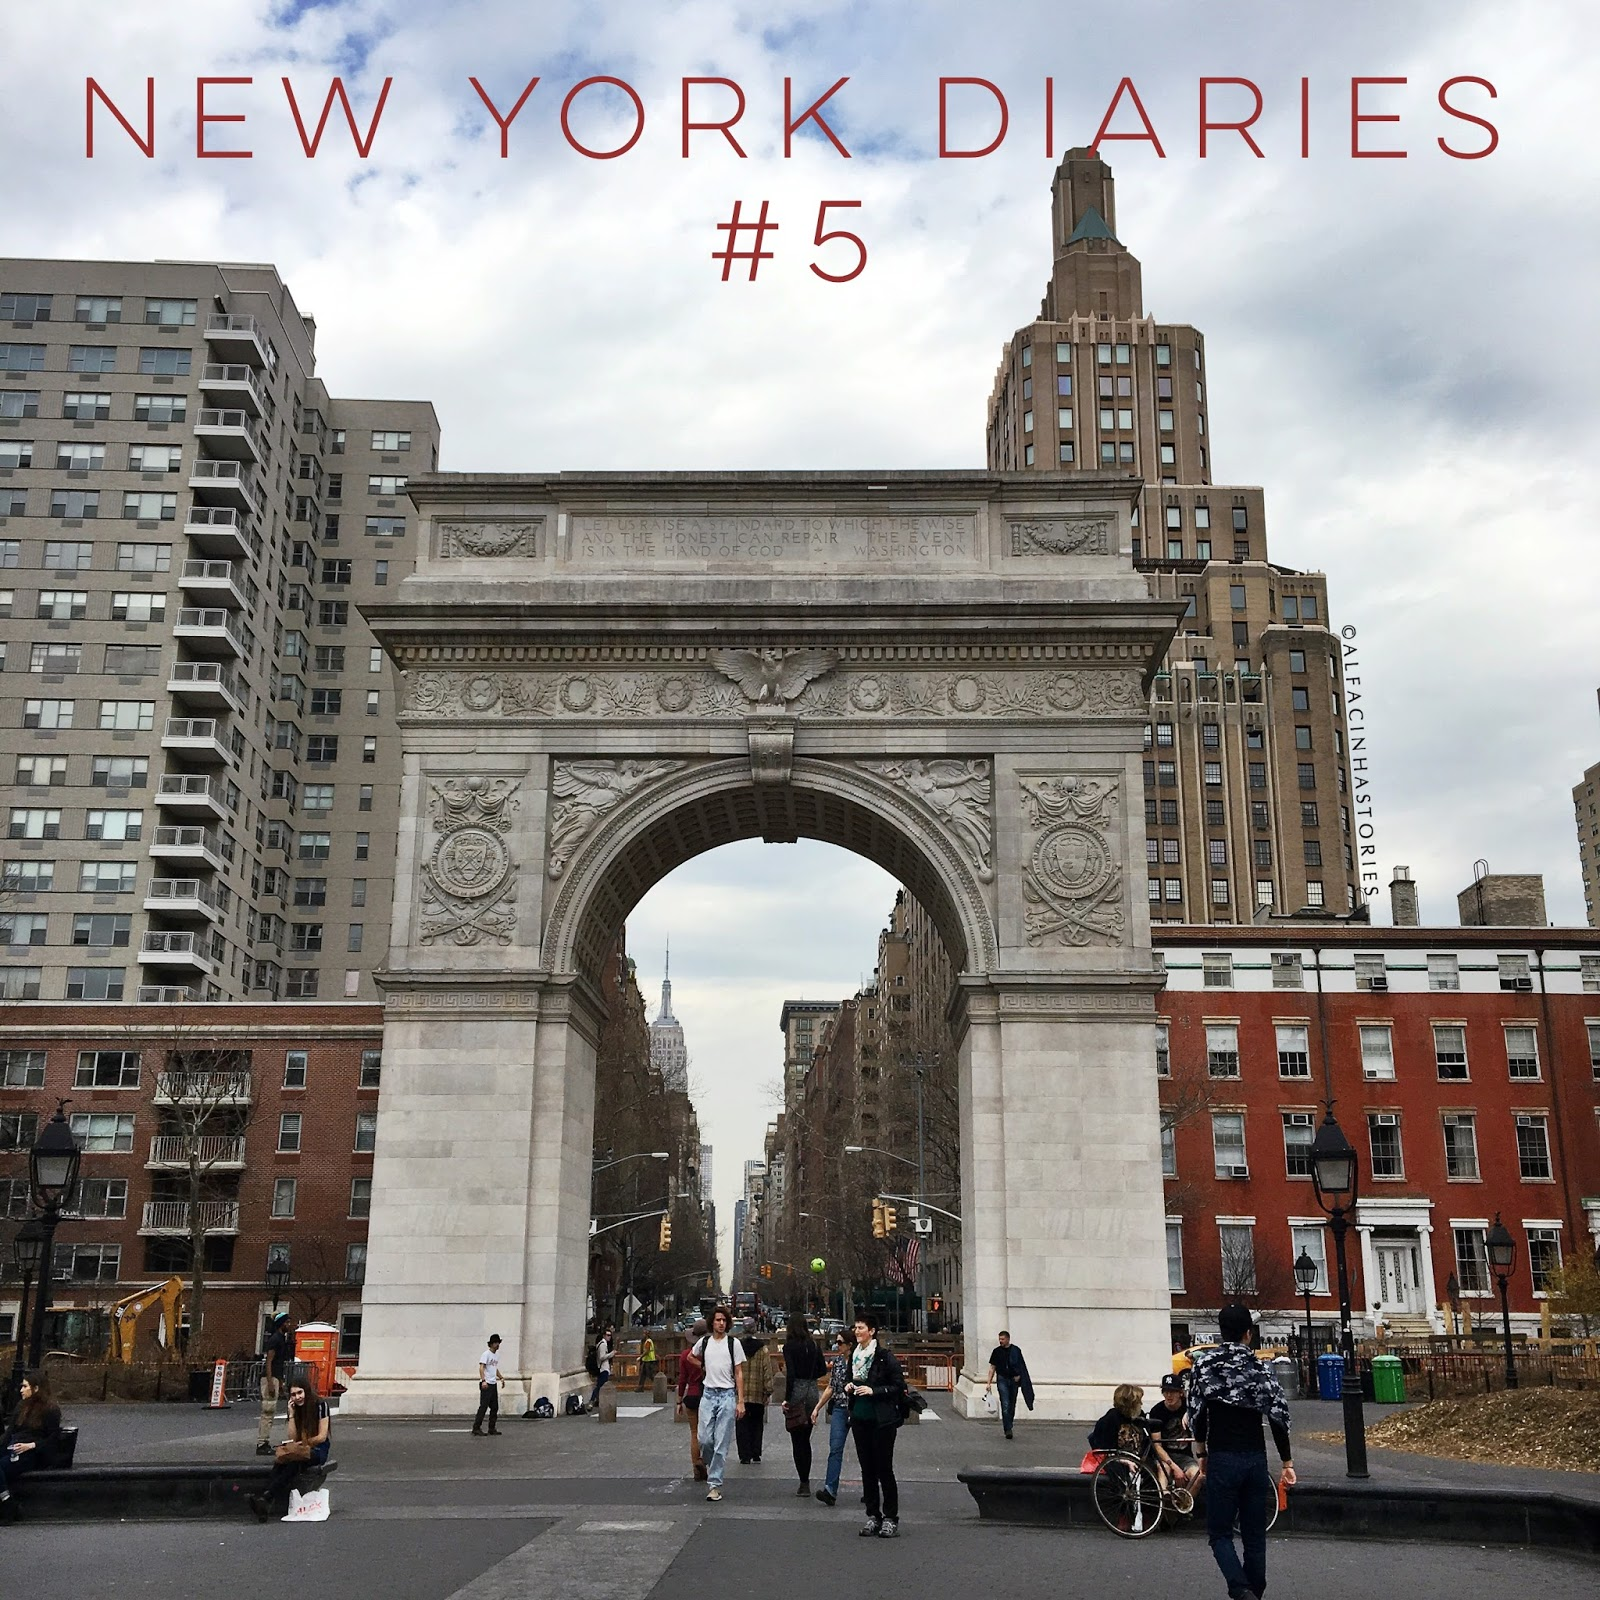 The New York Diaries #5